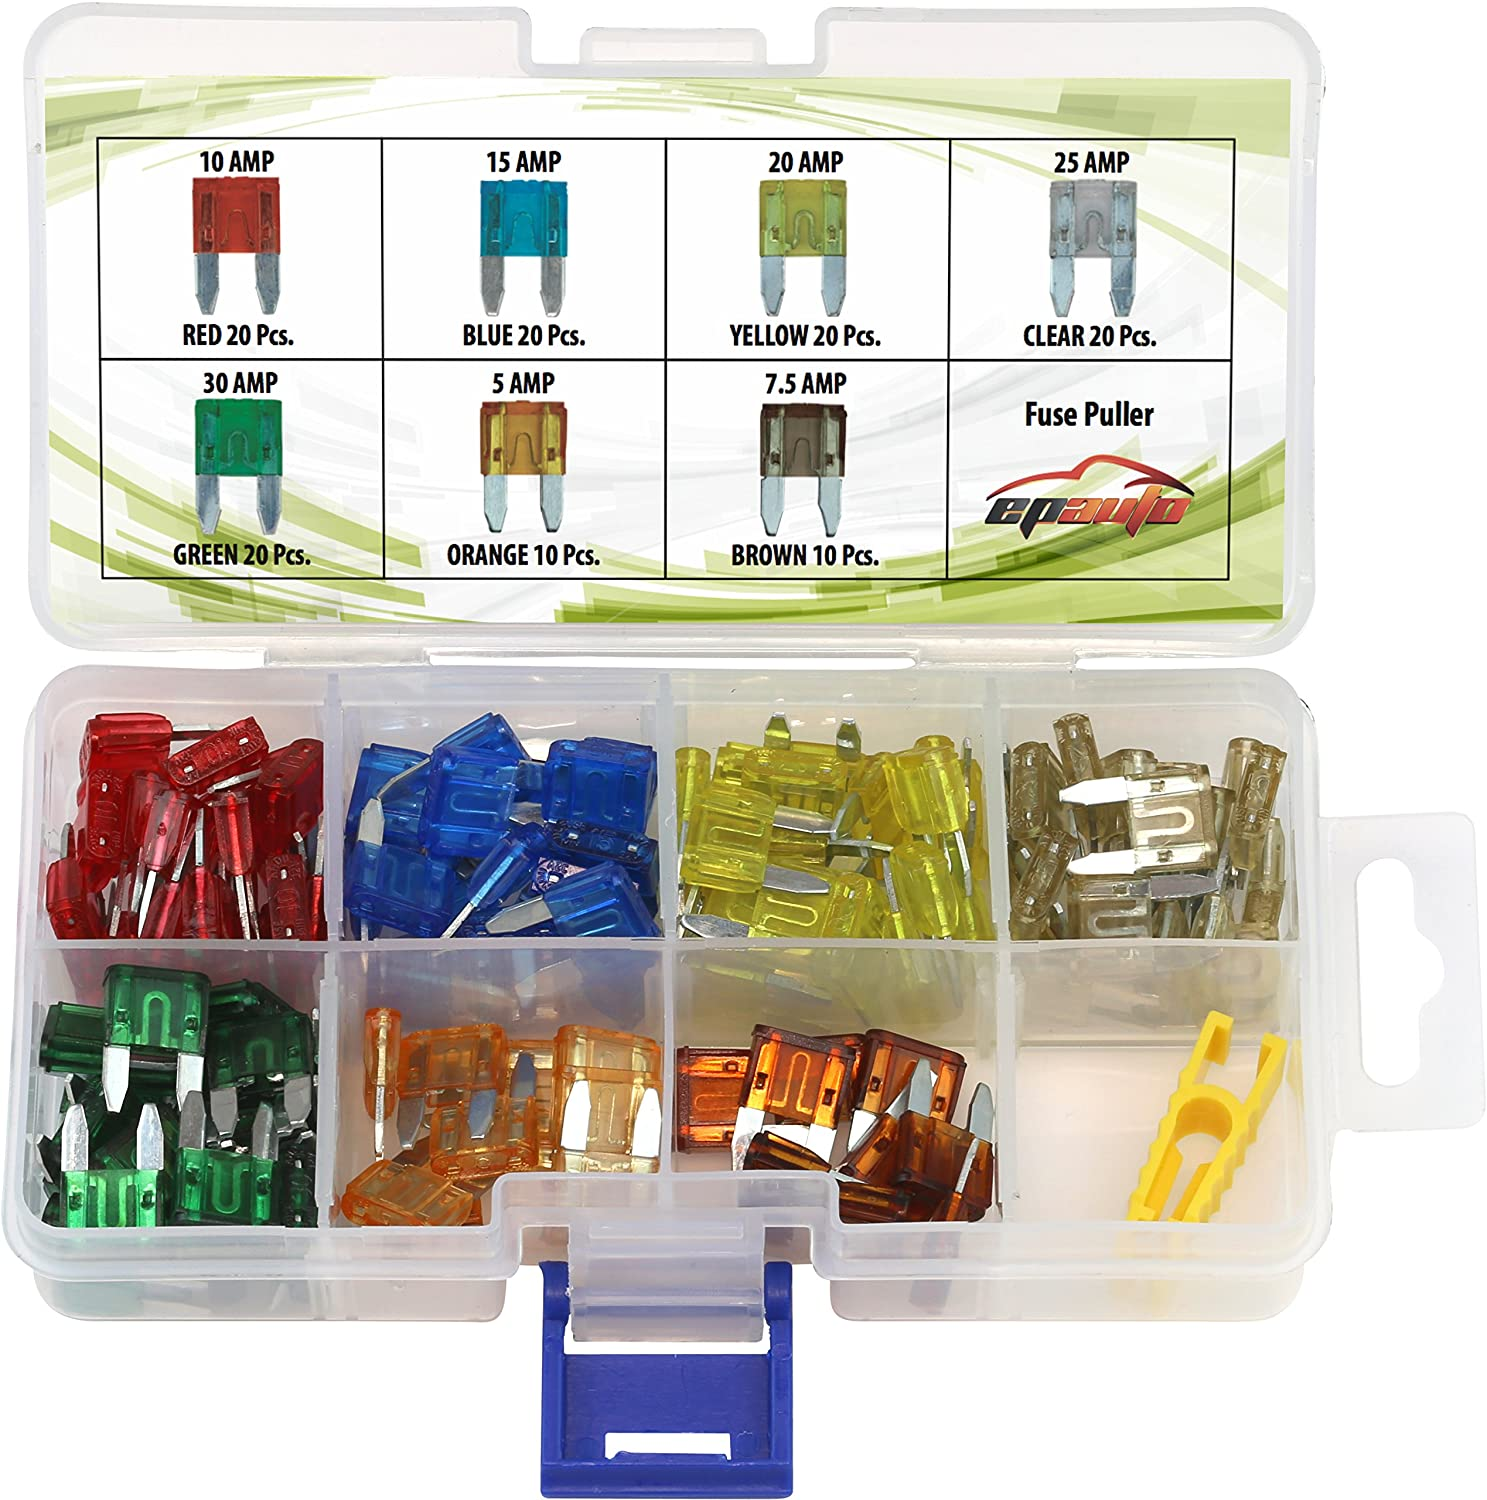 Useful Part 120PC Blade Fuse For Car Truck SUV/'S Auto Fuses Assorted Color Coded